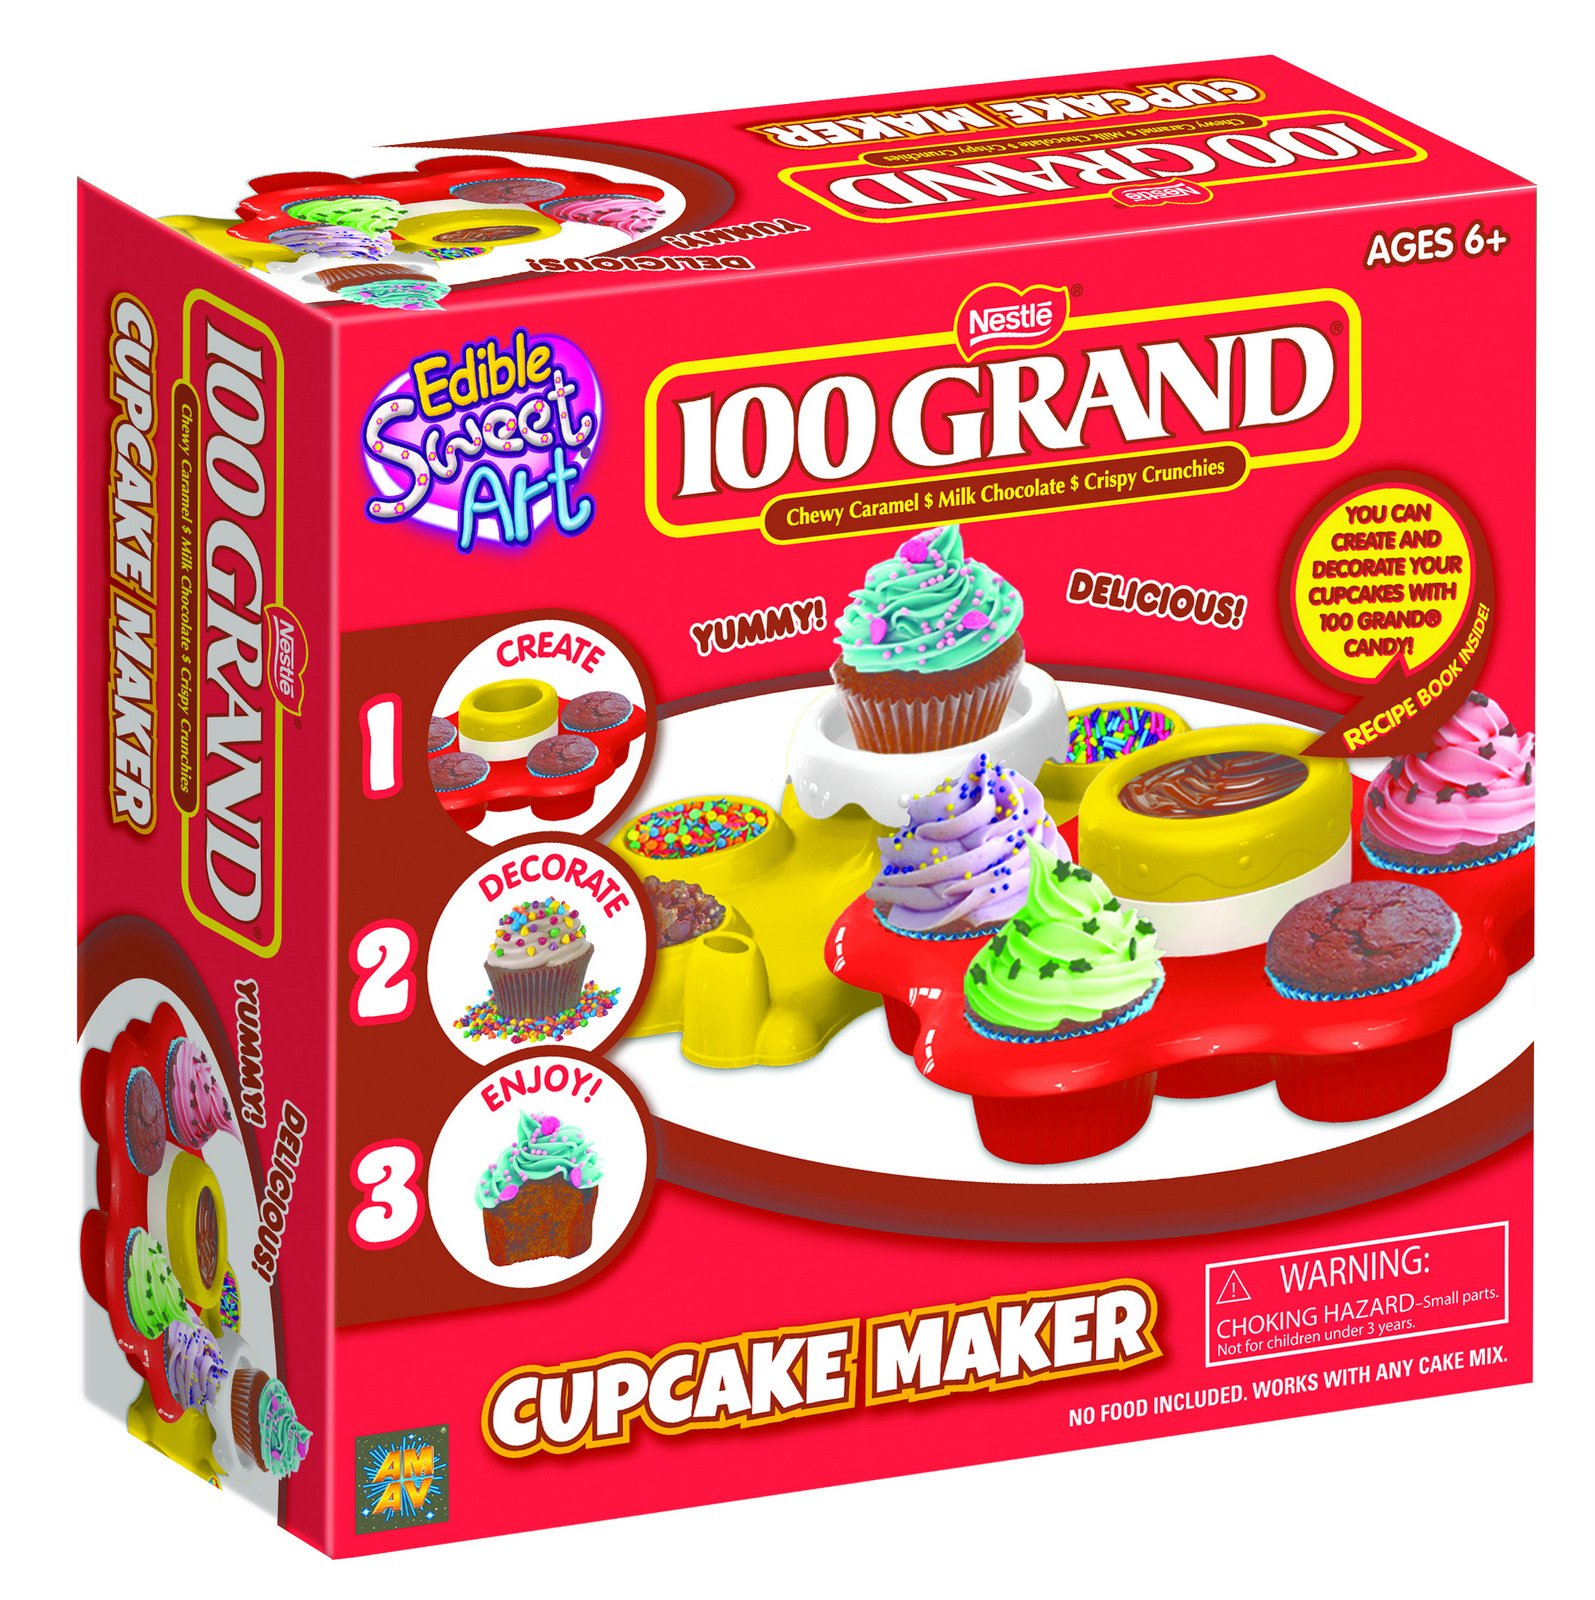 AMAV Cupcake Maker Kit - DIY Toy Make & Decorate Your Own Cupcakes - Easy & Safe to Use-No Oven Required - Perfect Group Activity & Best for Young Chefs & Cupcake Lovers by AMAV Toys